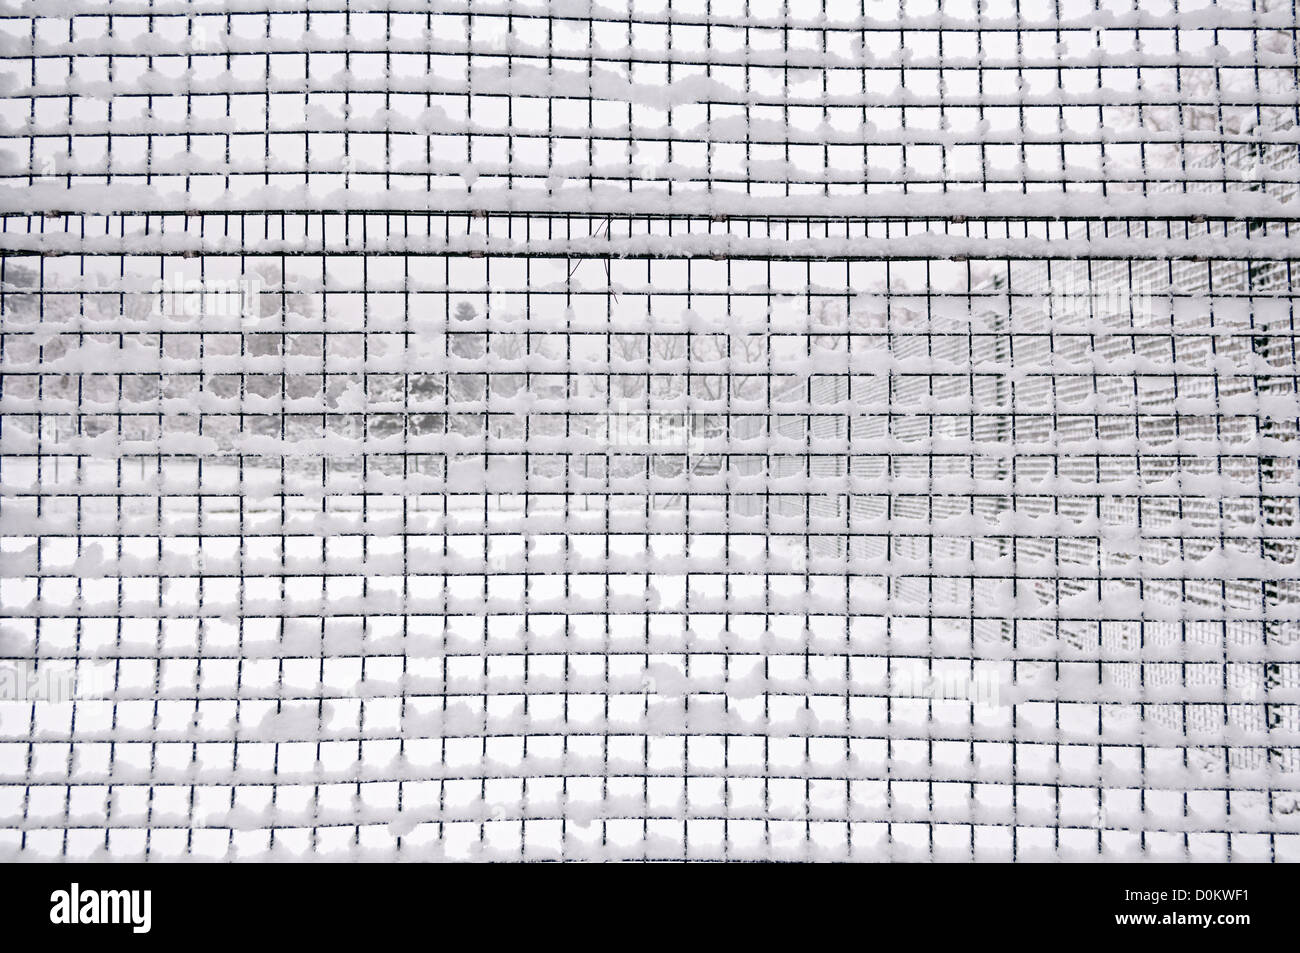 Steel Mesh Fence Stock Photos & Steel Mesh Fence Stock Images - Alamy